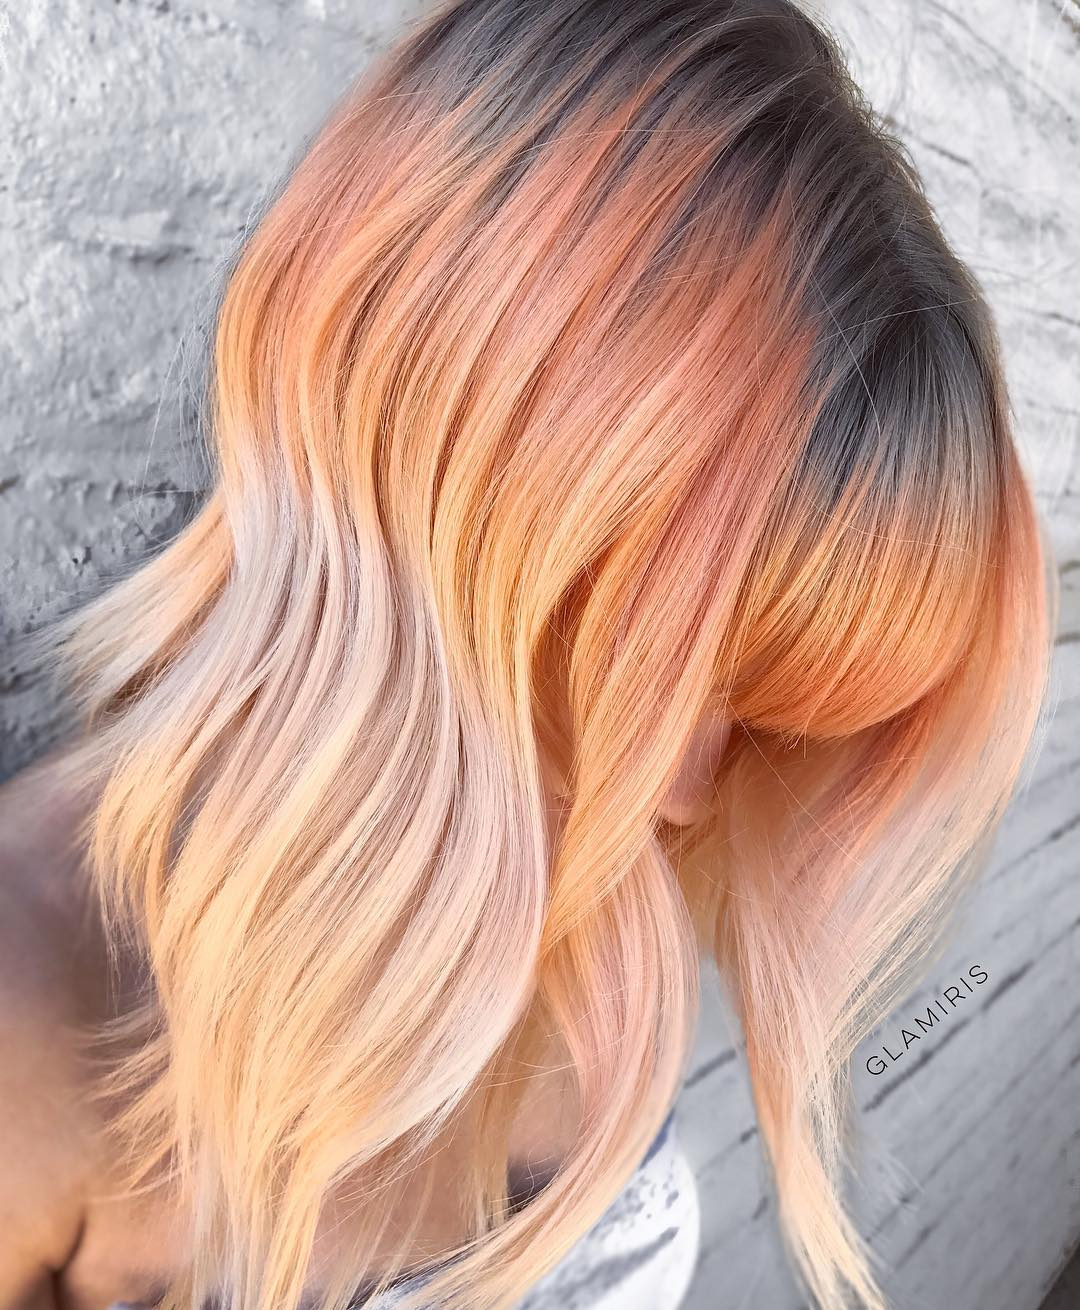 Coloured Hair Roots Smoked Peach Hair Is About To Take Over Instagram Allure